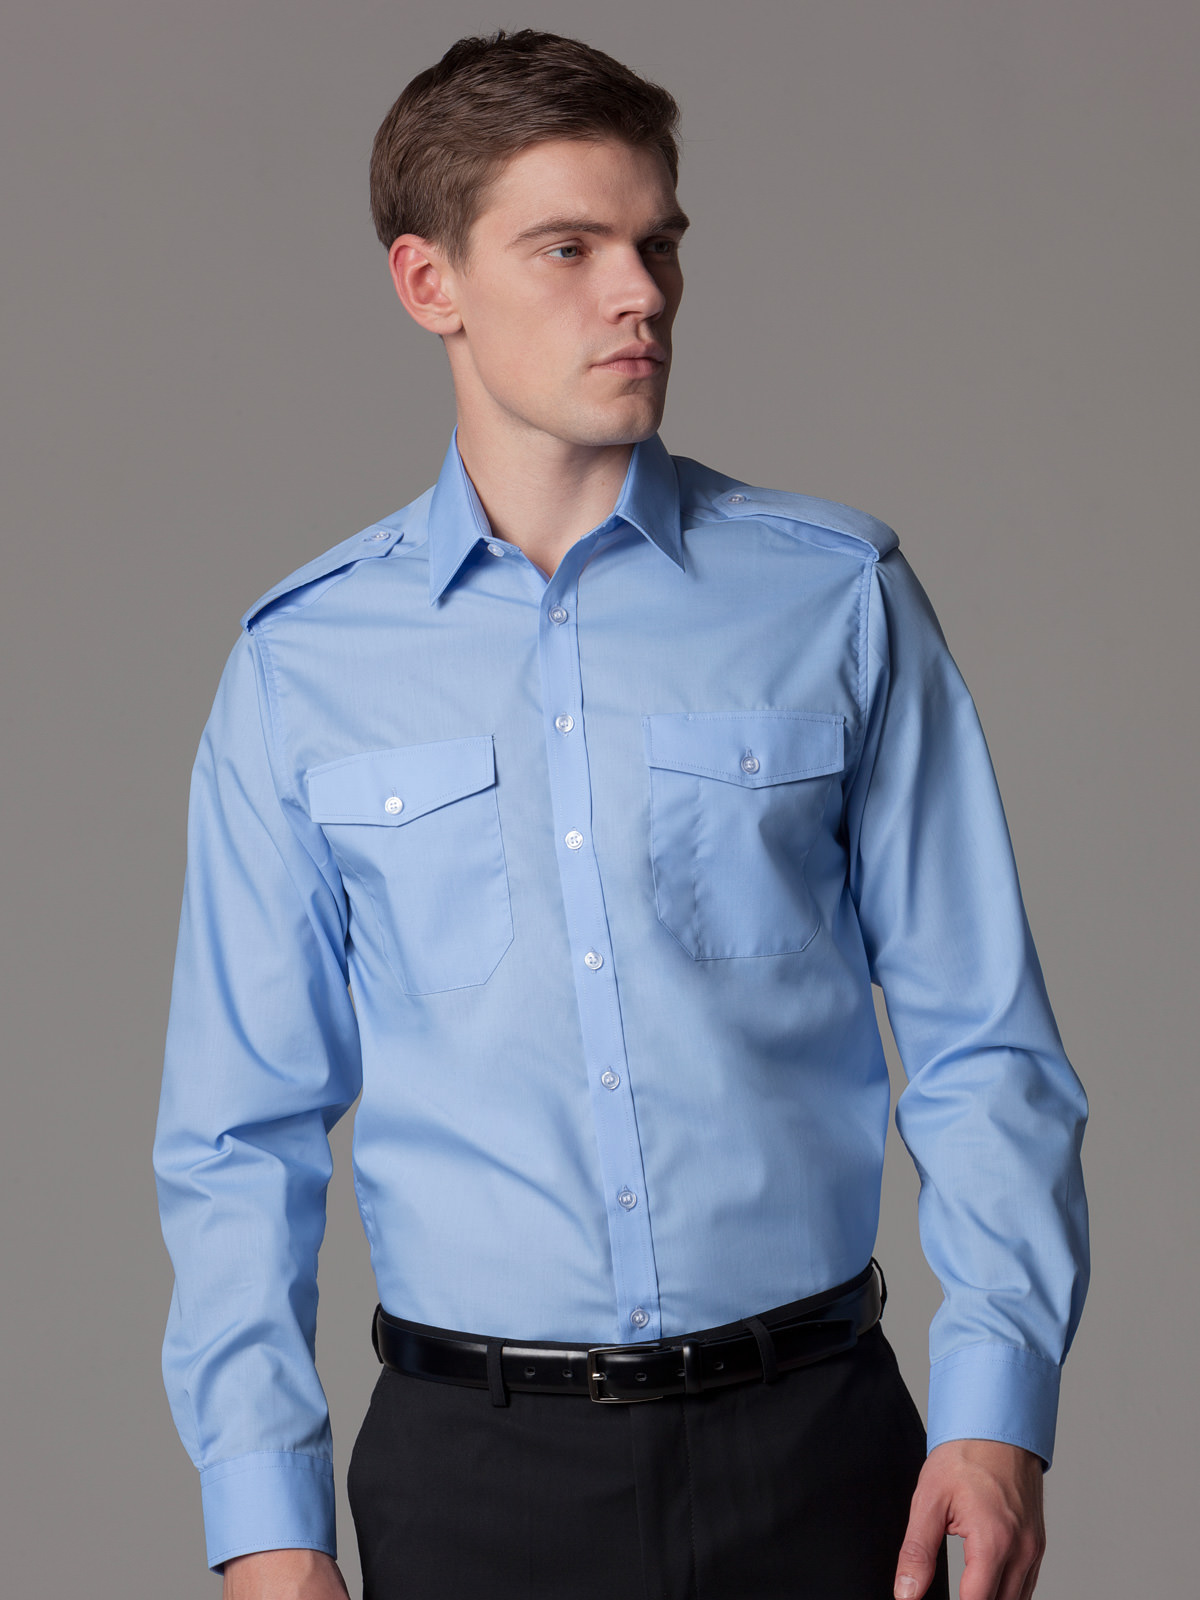 Men S Suits On Pinterest: KK134 Men's Pilot Shirt Long Sleeve